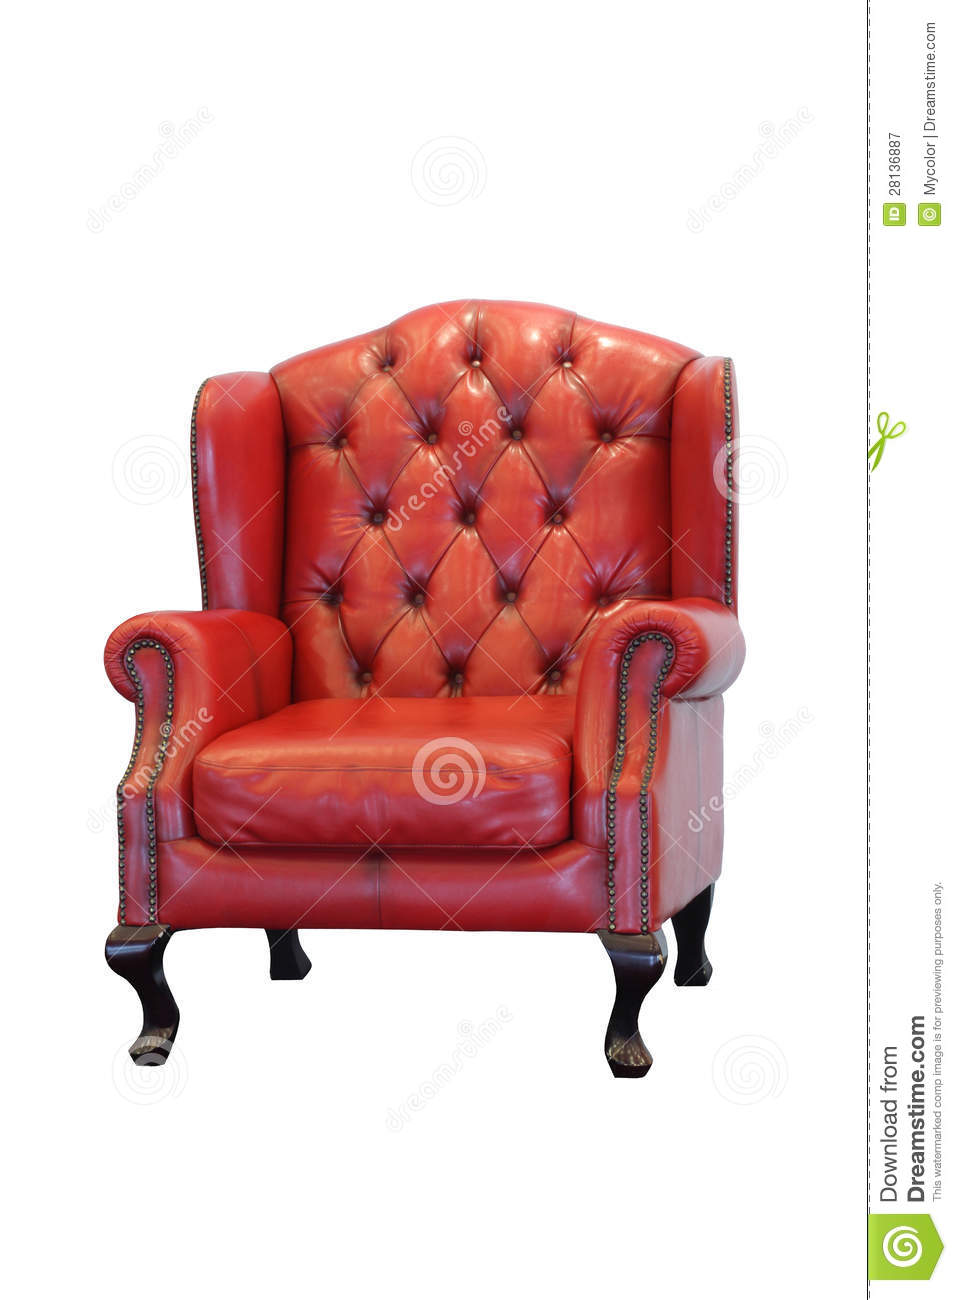 Red leather armchair stock image. Image of furniture ...